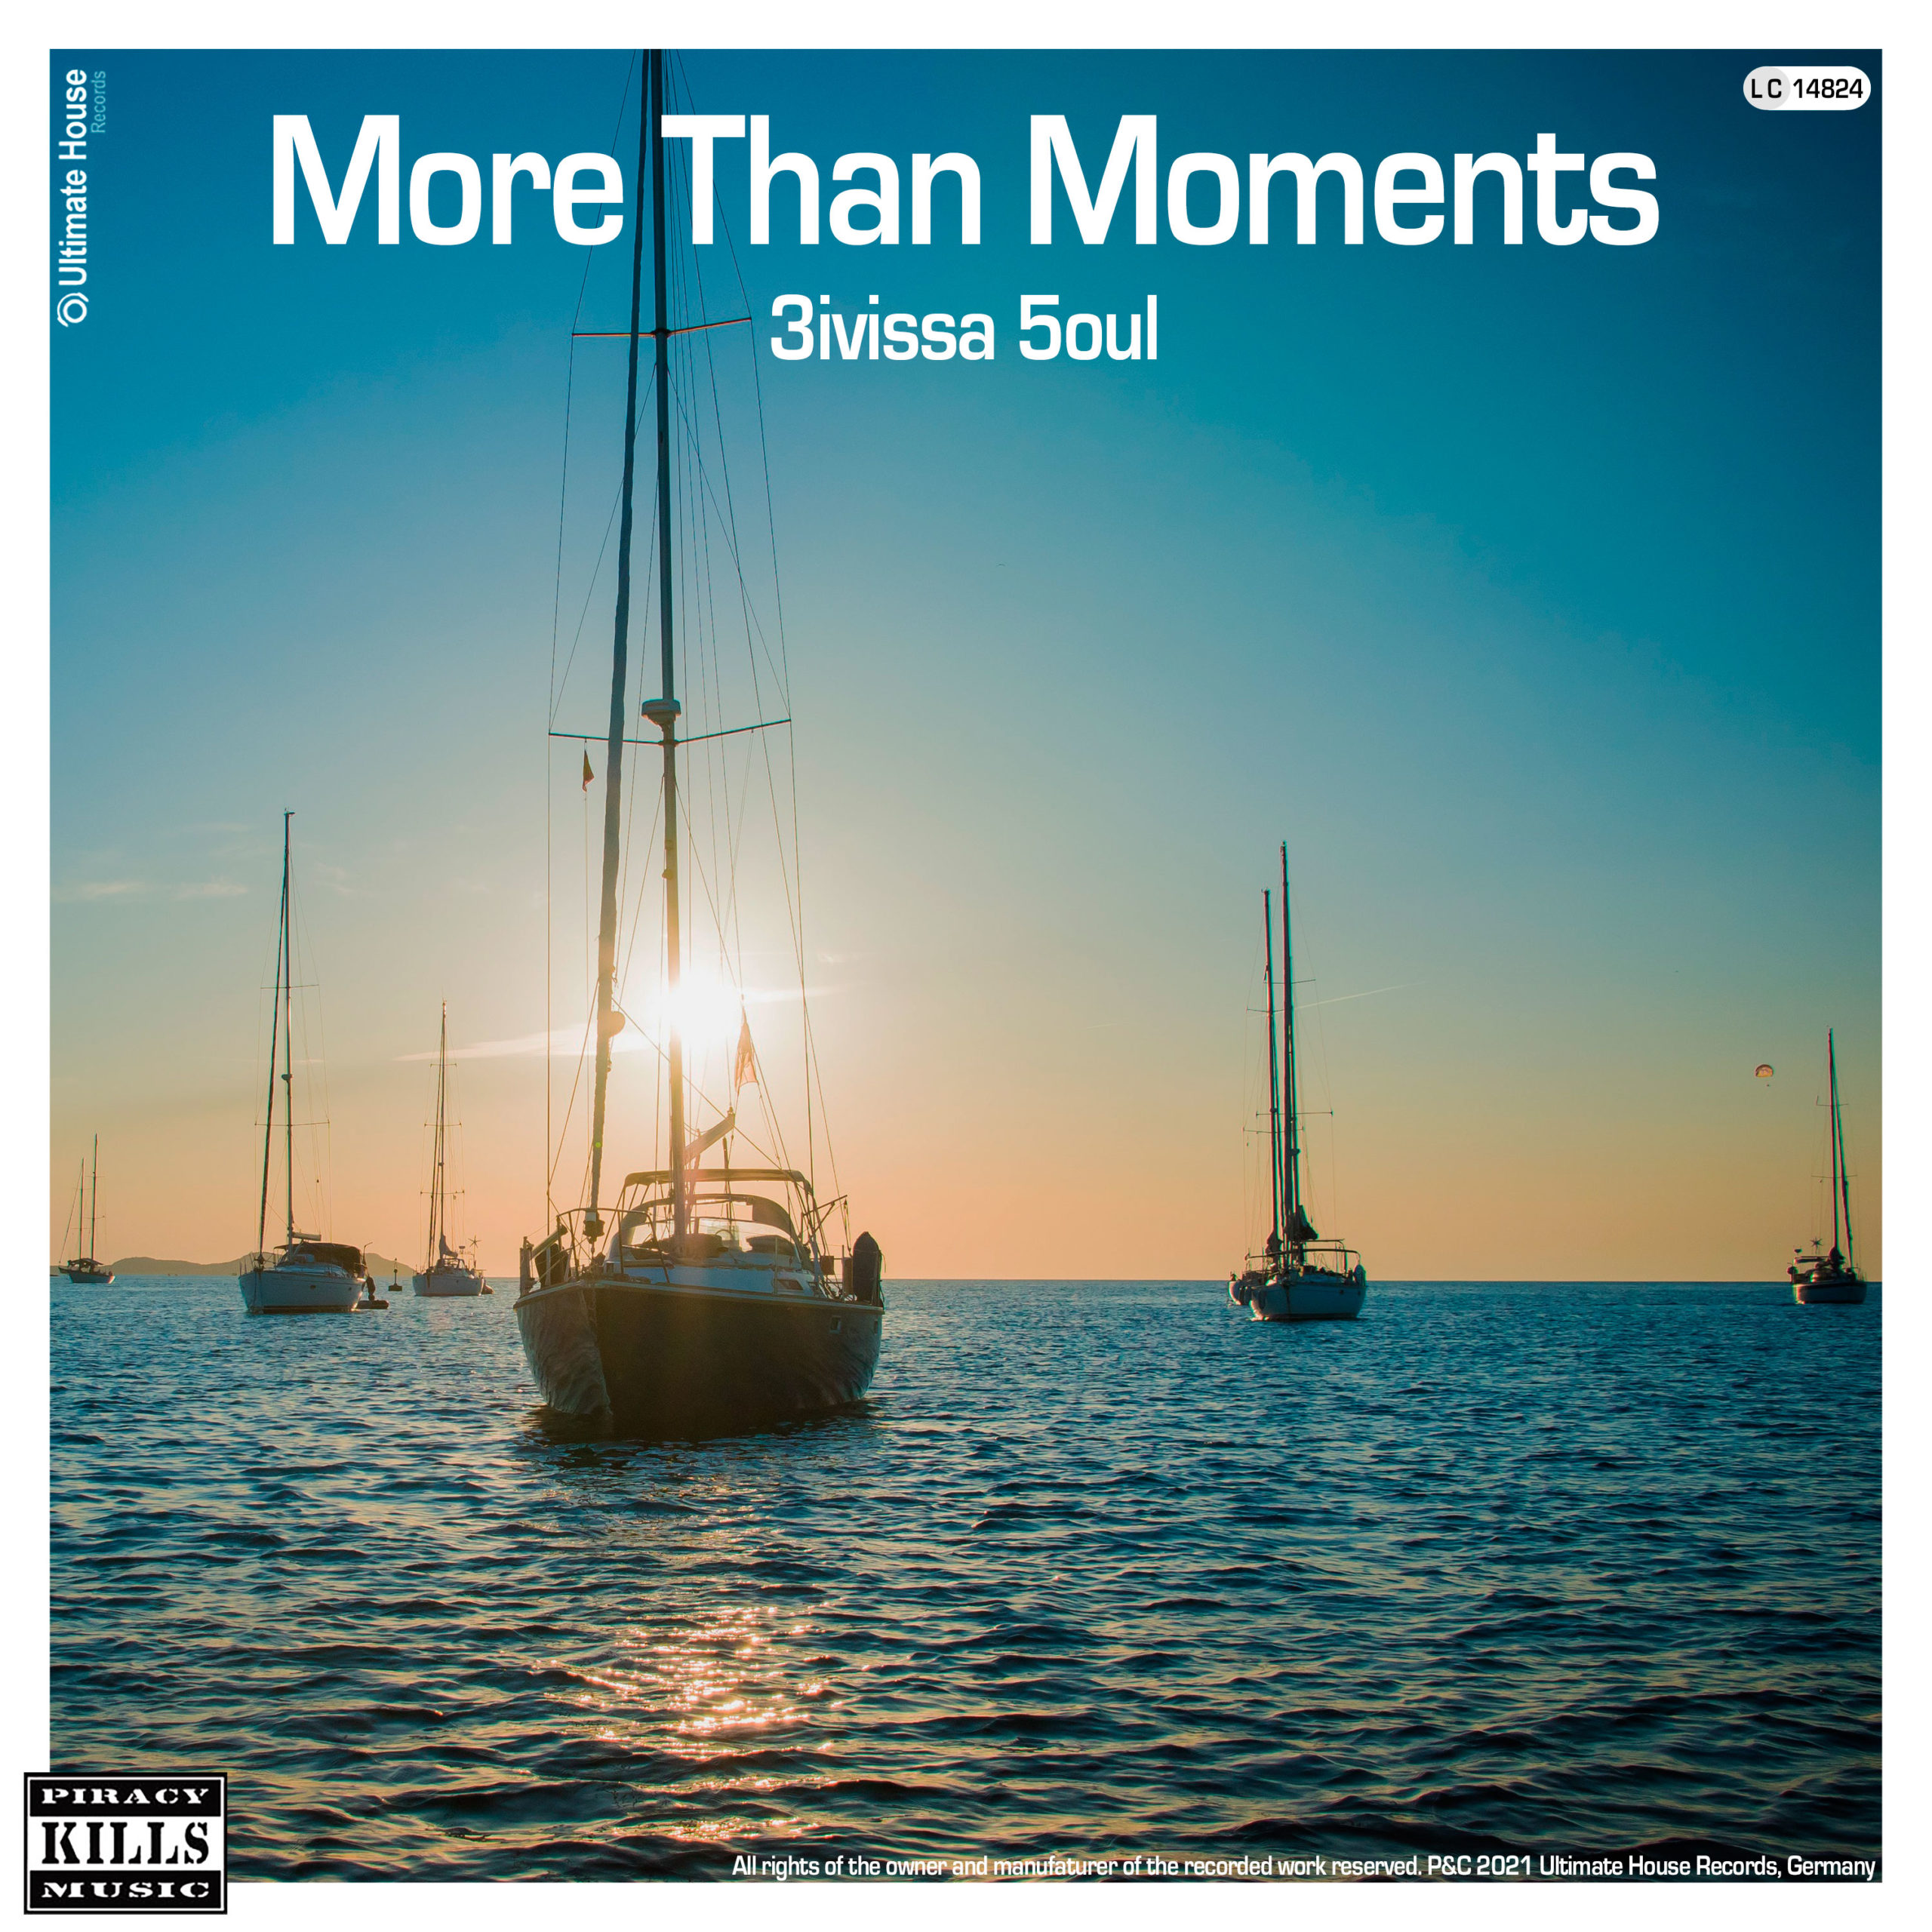 https://www.ultimate-house-records.com/wp-content/uploads/2021/05/148-More_than_Moments-Cover_3000px_web-scaled.jpg